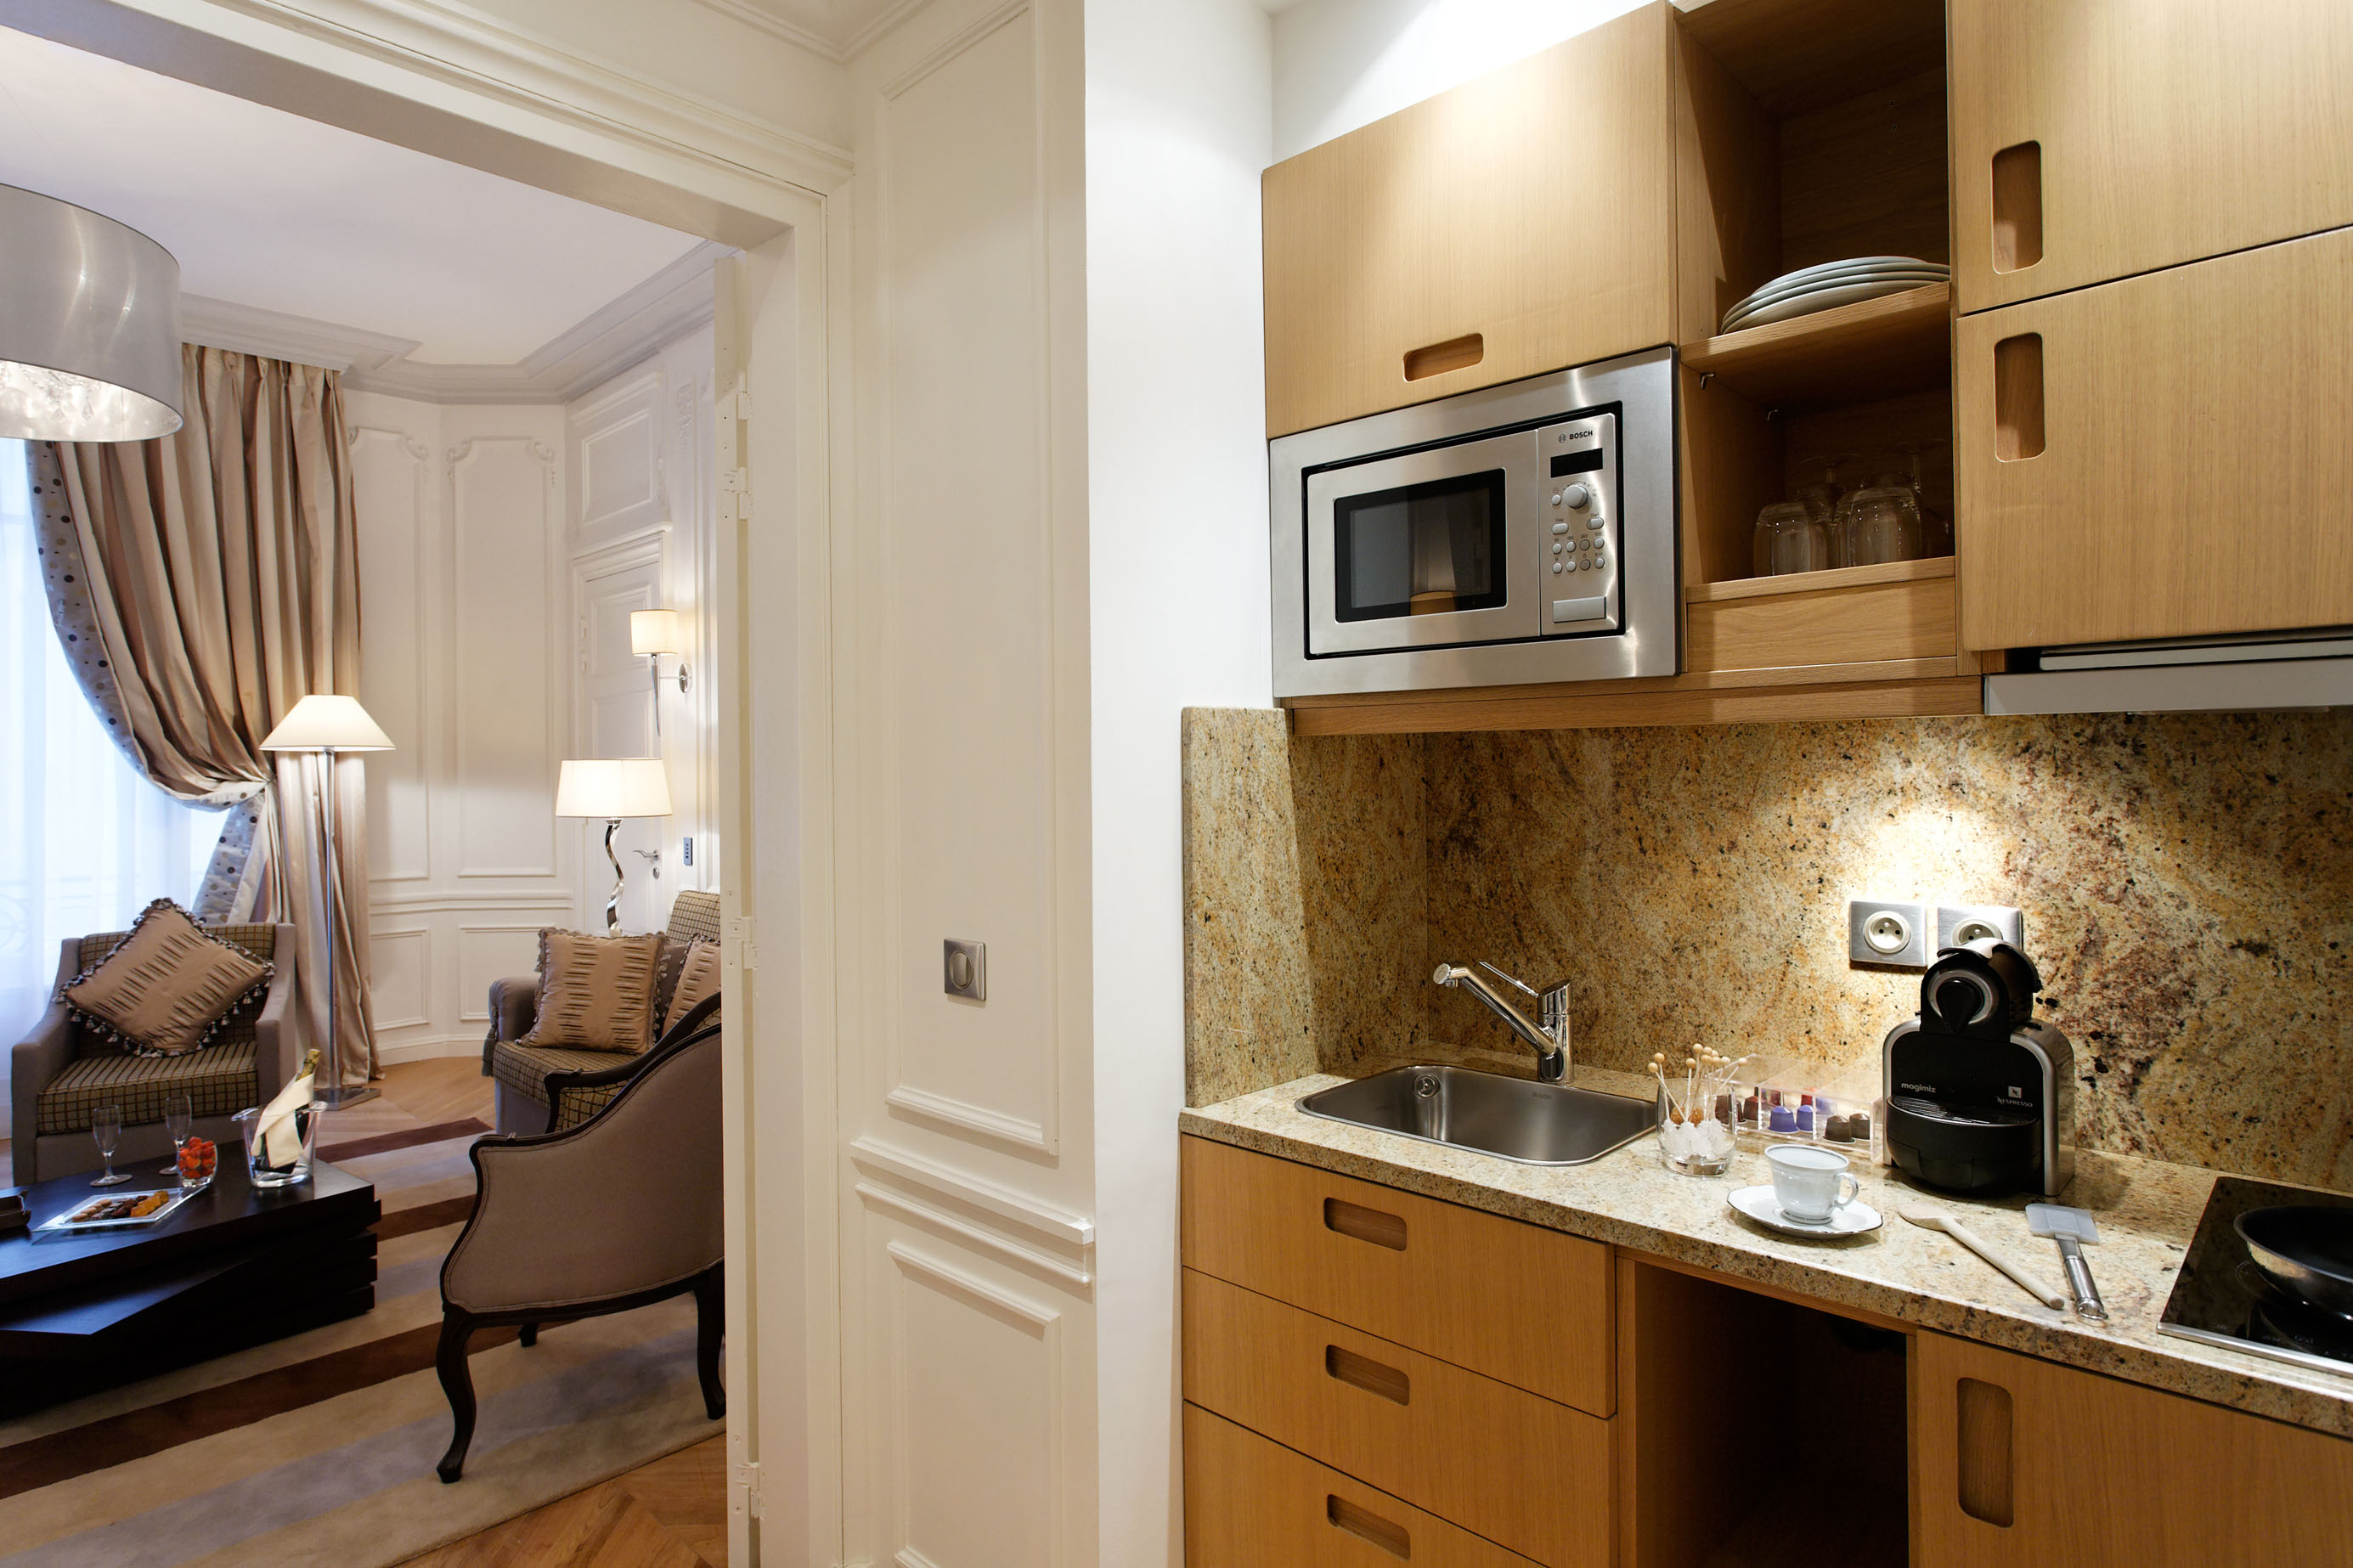 260/Suites/Suite junior/Suite_Junior_9_Kitchenette__CMajestic_Hotel-Spa.jpg